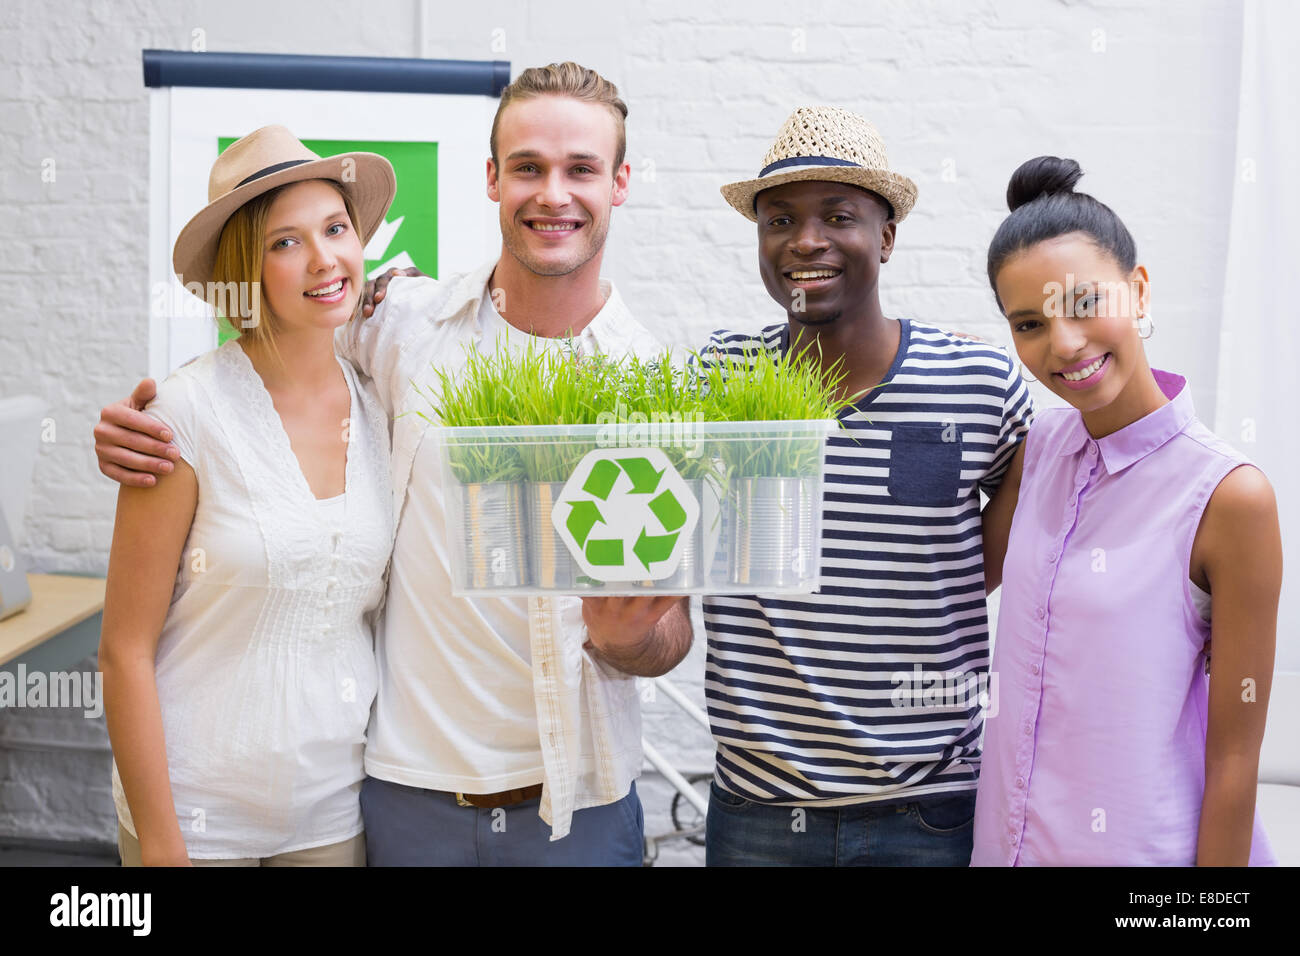 Creative business team holding plant with recycling symbol - Stock Image